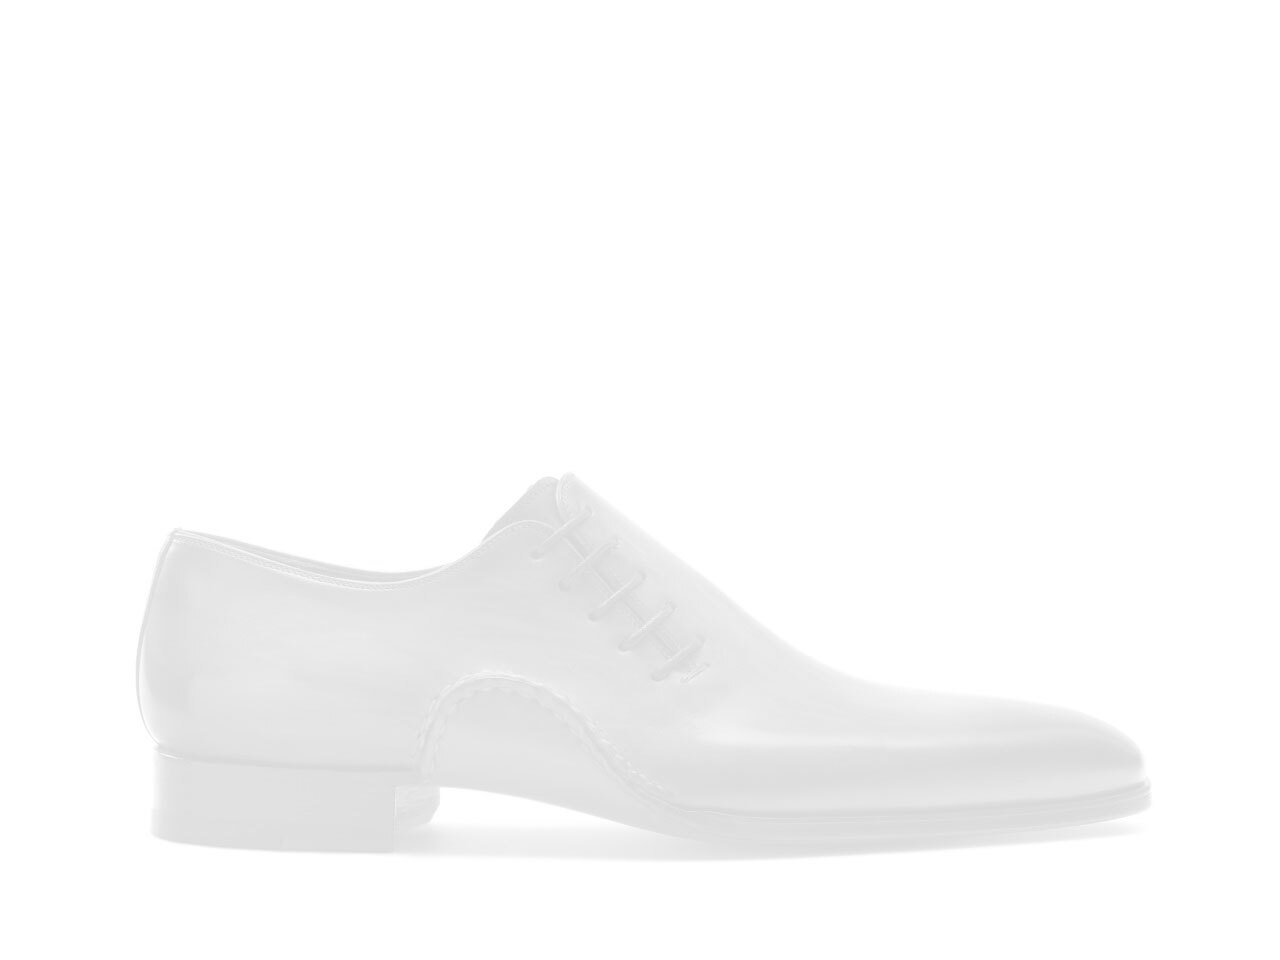 Side view of the Magnanni Castillo White and Navy Men's Sneakers